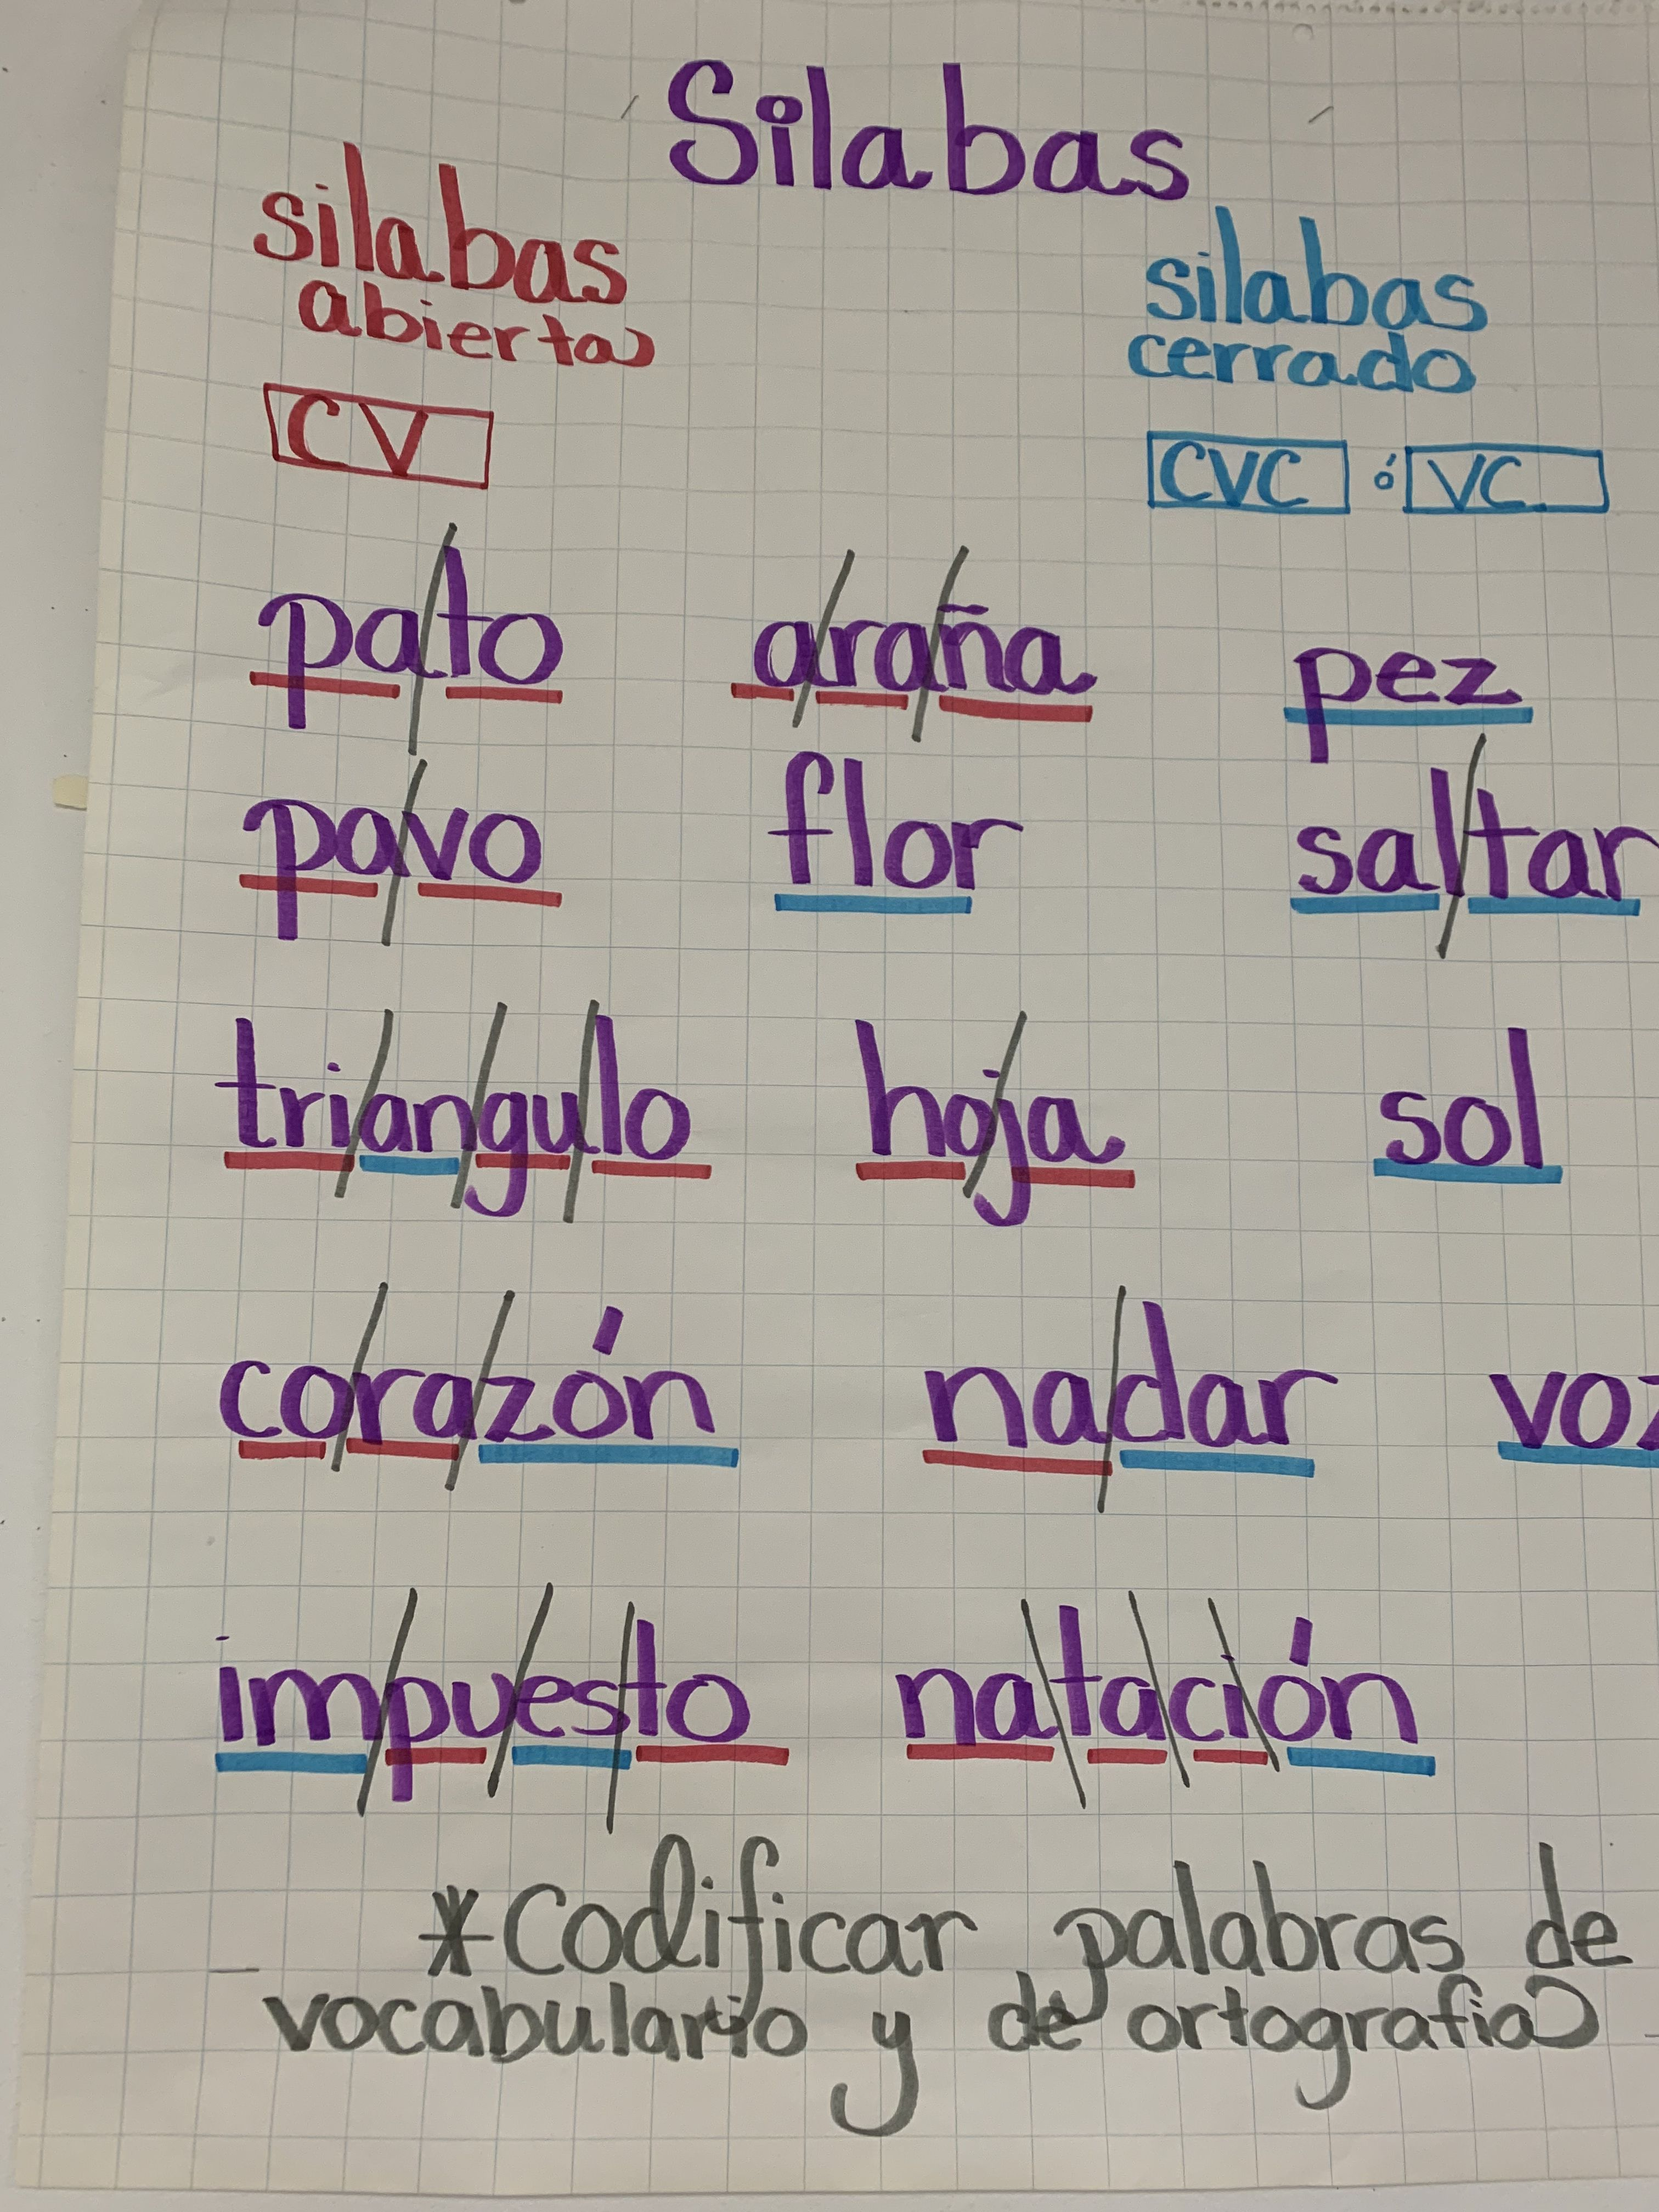 Students Code Their Spanish Words By Breaking Down Silabas